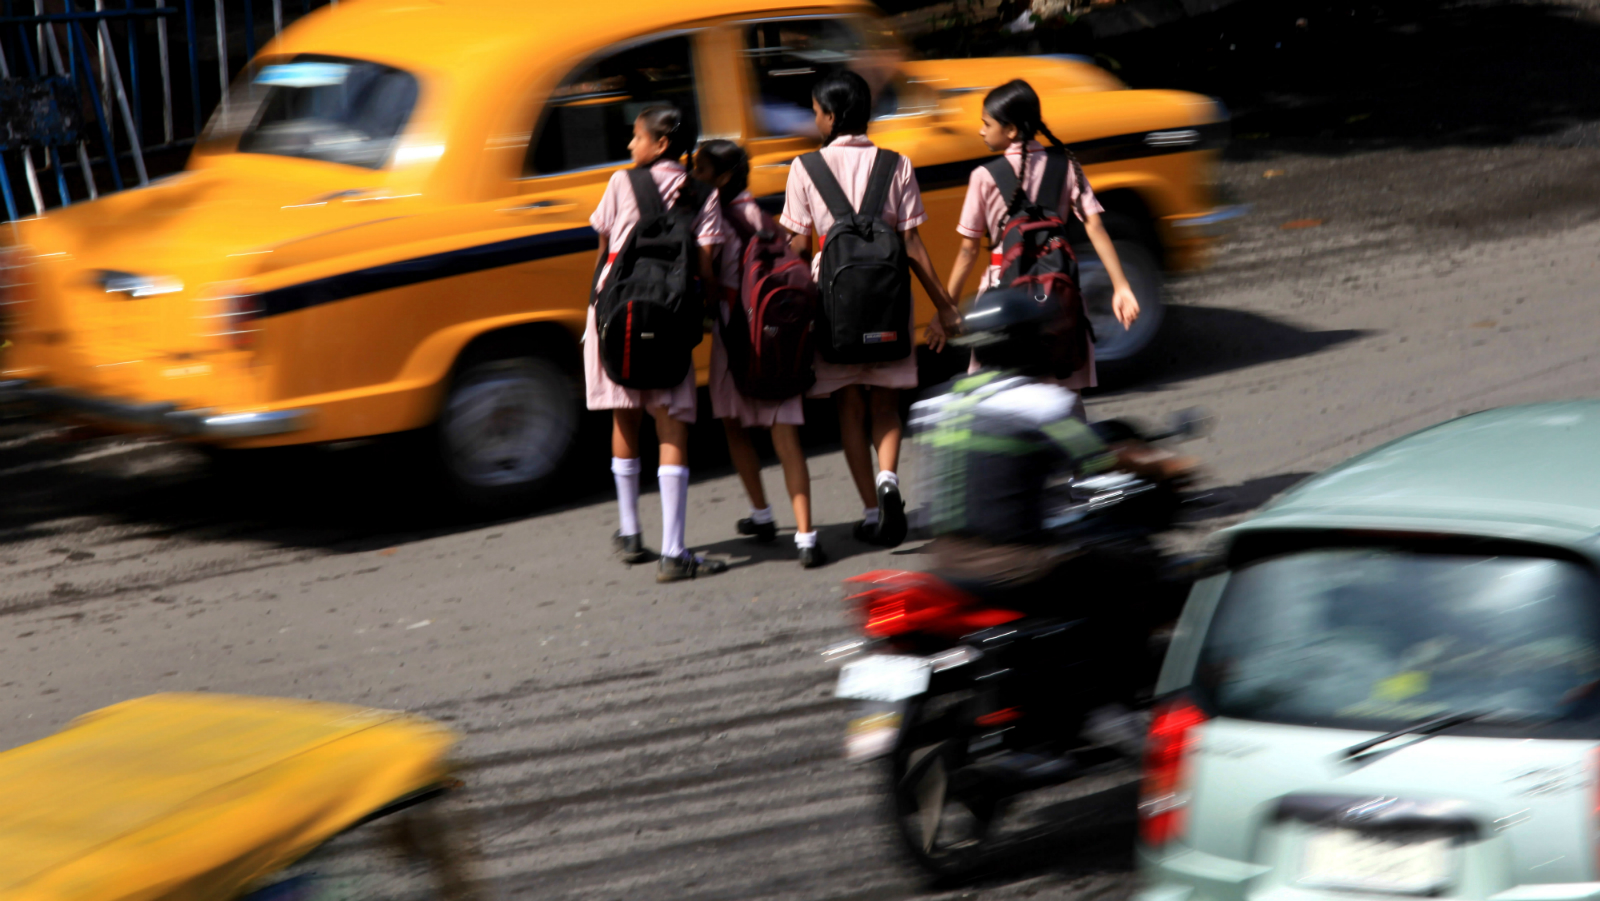 Indian students try to cross in the middle of a busy road in Calcutta, Eastern India, 17 July 2013. According to reports, there are 125,000 fatalities brought about by road accidents annually. Media reports on 17 July announced government plans to prohibit vehicles carrying loads that protrude up to one meter outside a vehicle's frame in order to limit accidents.